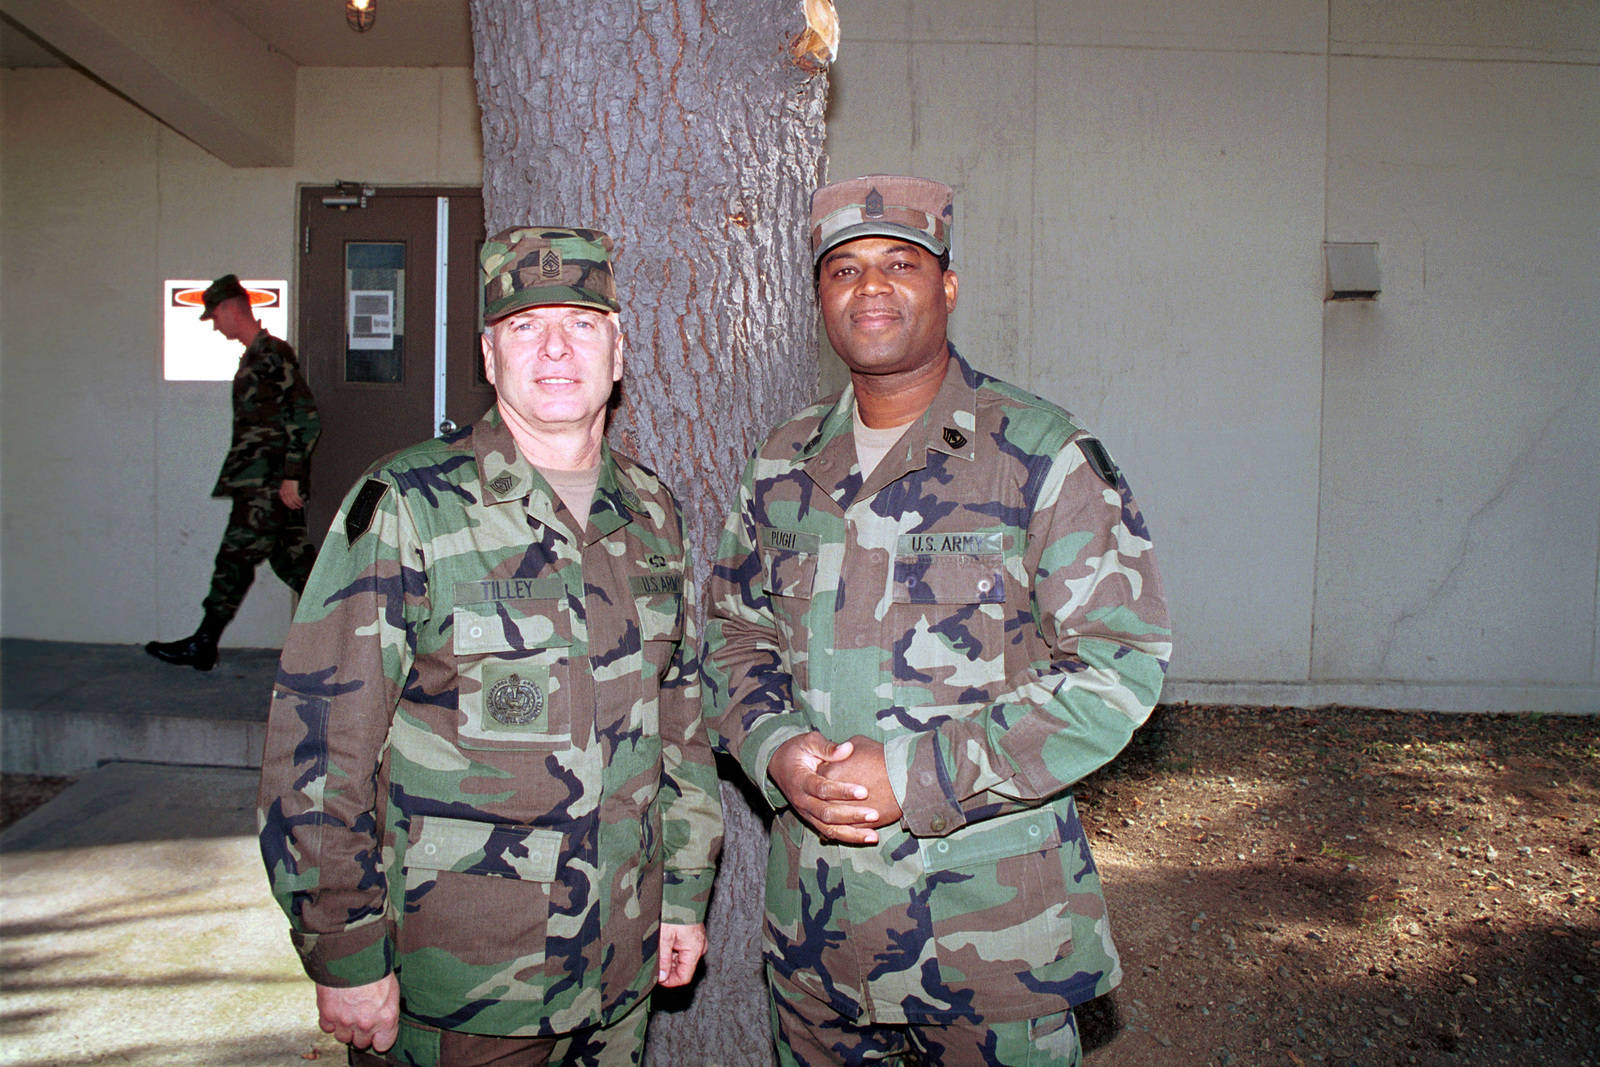 Sergeant Major of the Army Jack L. Tilley, left, poses for a picture with First Sergeant Pugh, from Charlie Company, 1ST Battalion, 52nd Aviation Regiment, and 17th Aviation Brigade, at the end of his tour of Camp Carroll